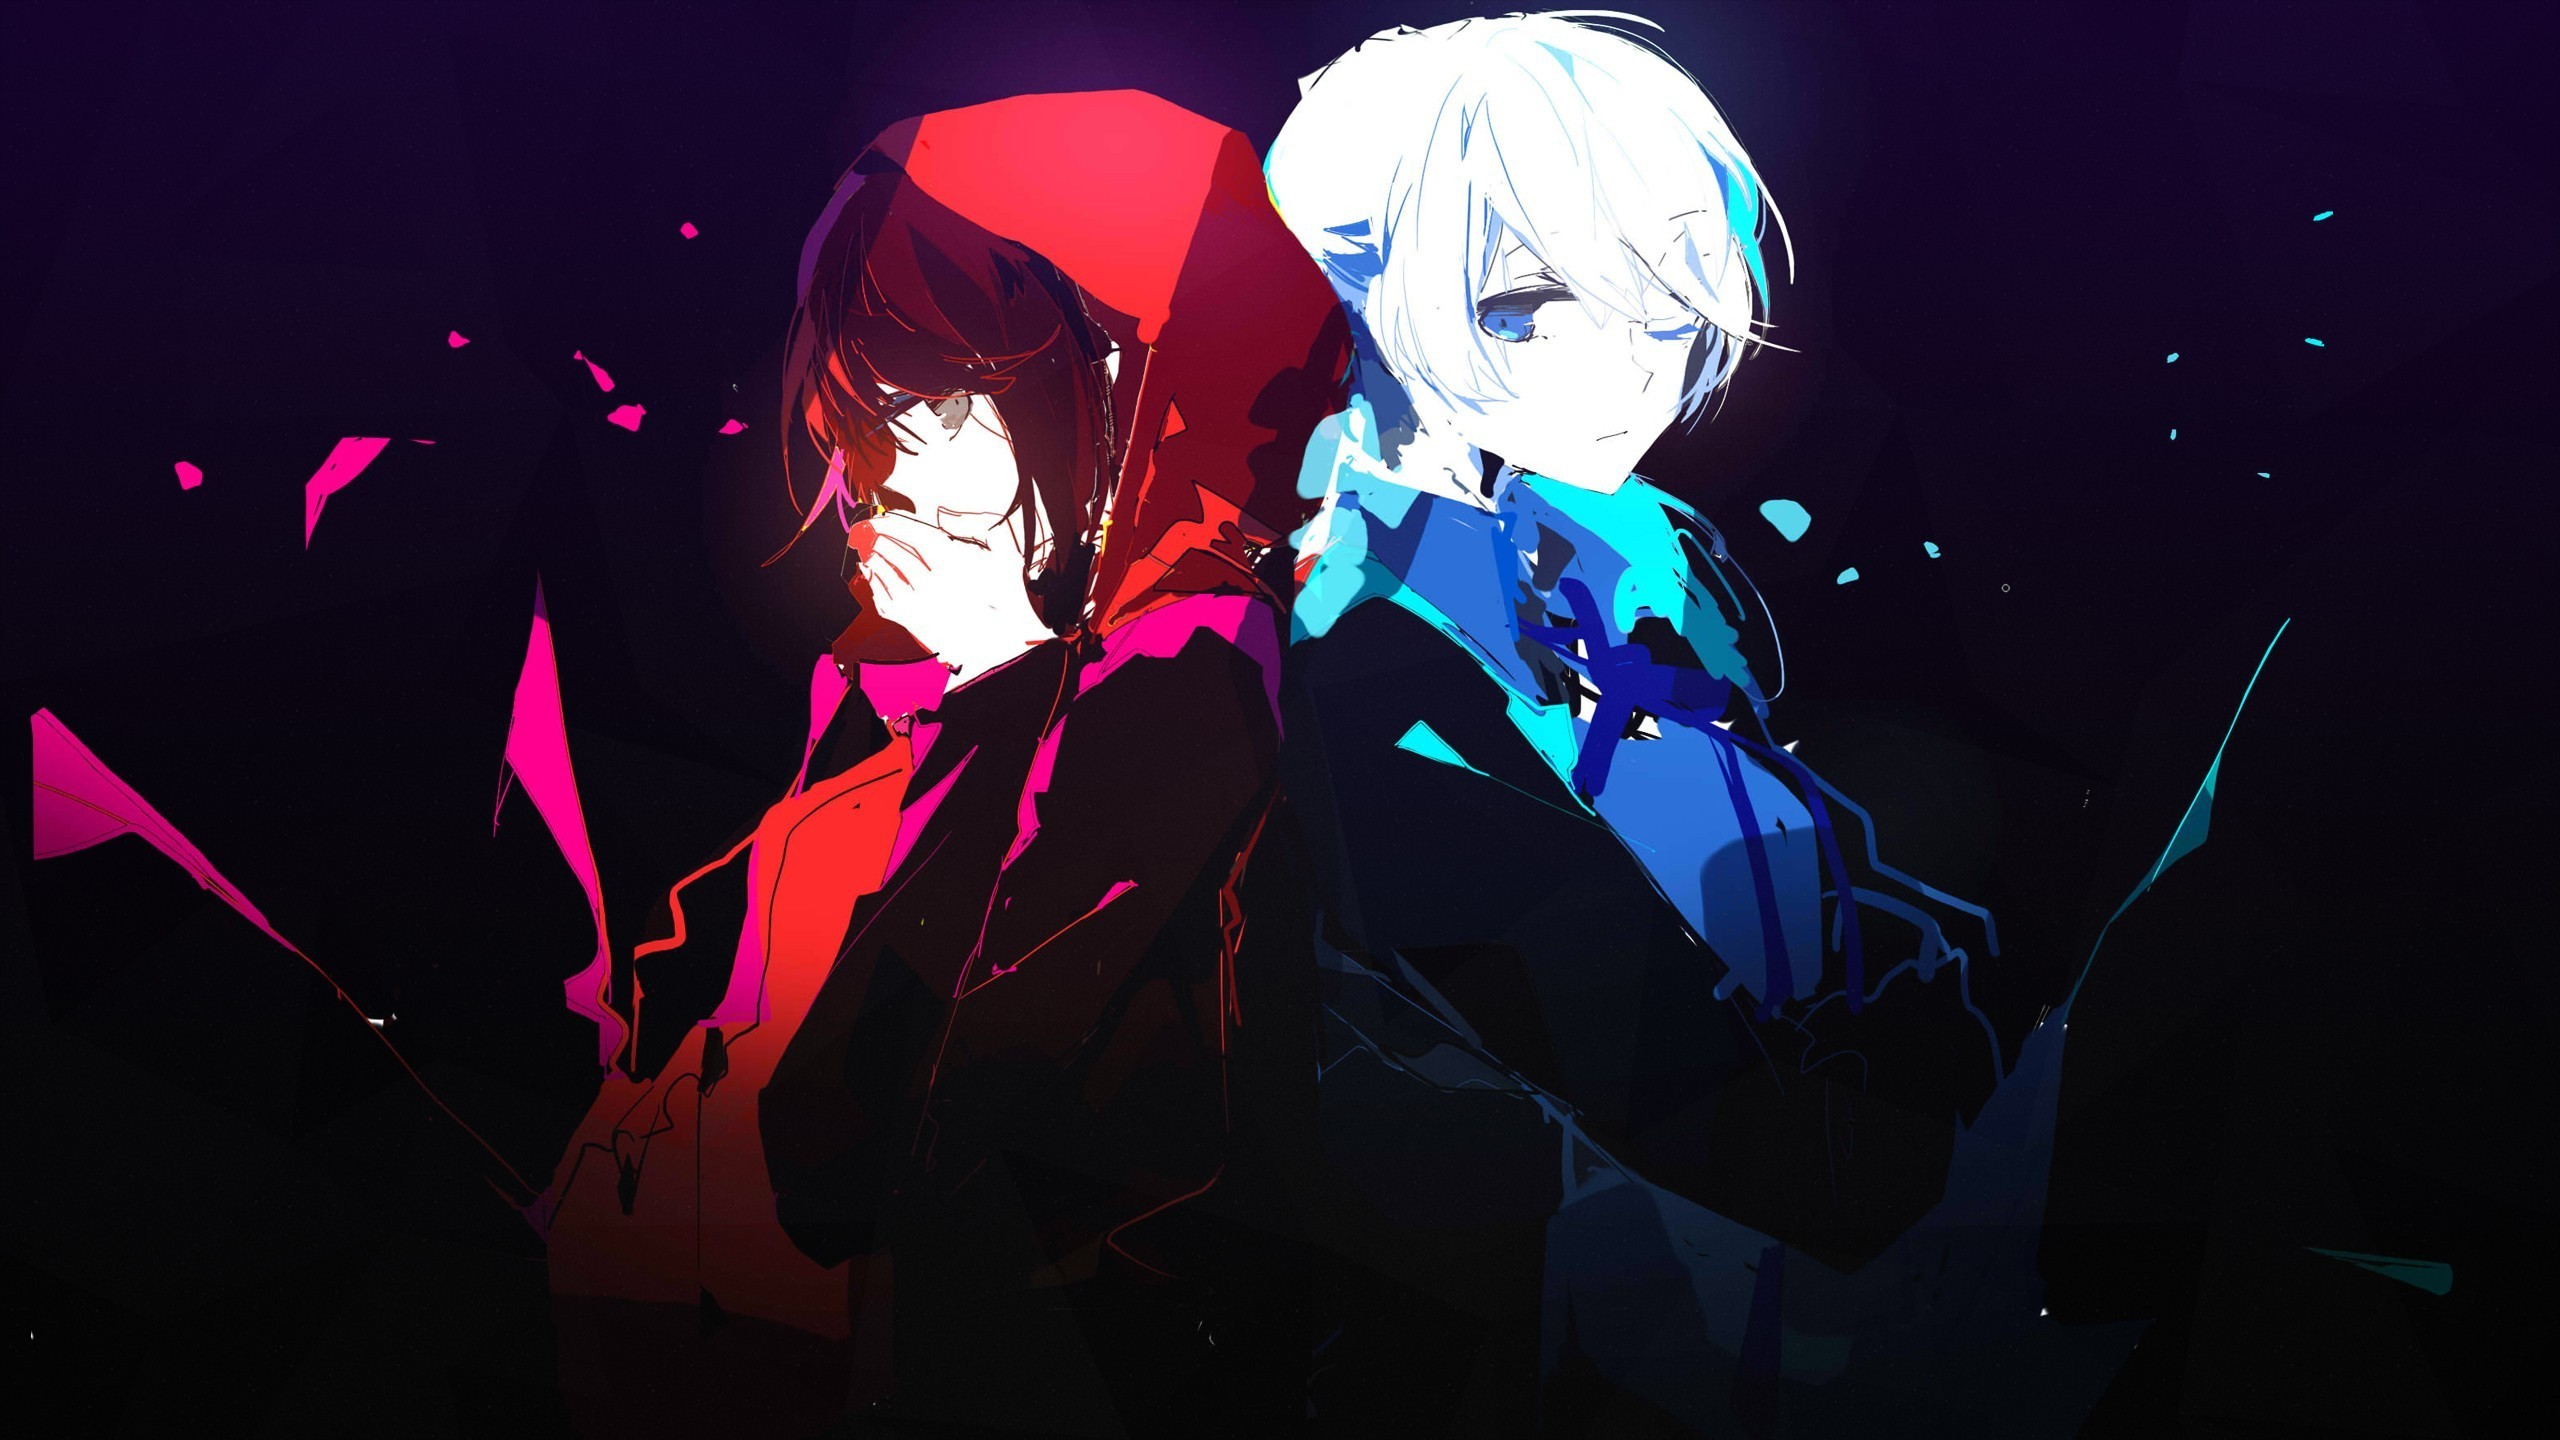 anime Girls, RWBY, Weiss Schnee, Ruby Rose, Anime Wallpapers HD / Desktop  and Mobile Backgrounds